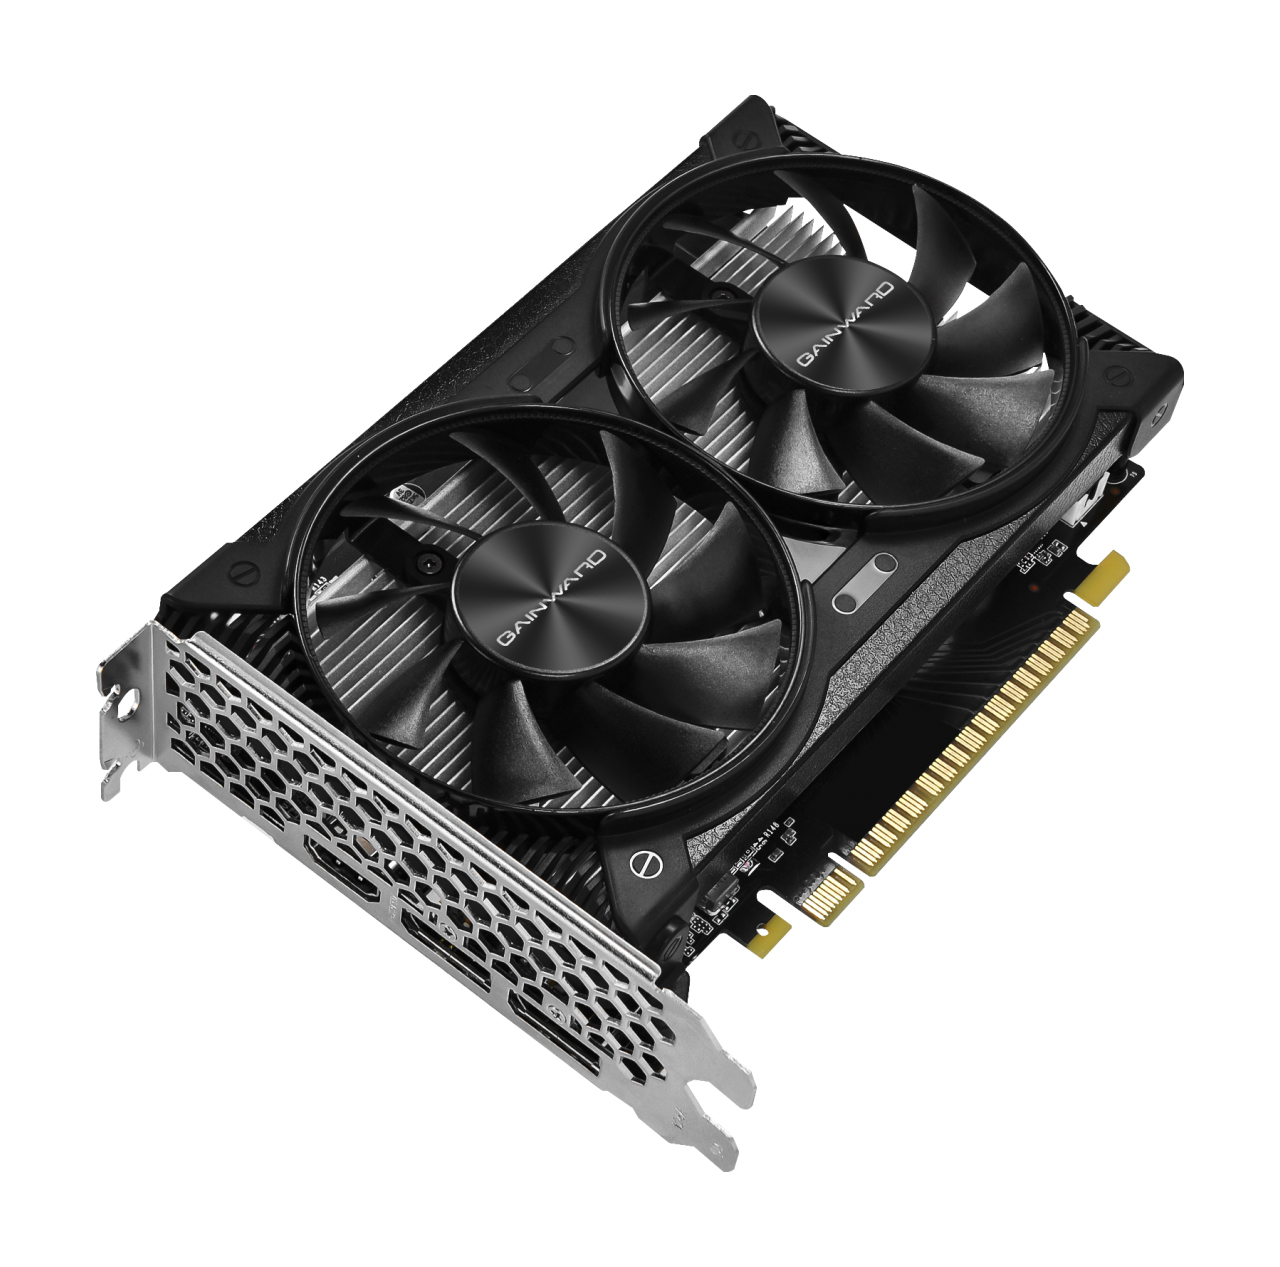 Gainward 471056224-1785 - GeForce GTX 1650 - 4 GB - GDDR6 - 128 Bit - 7680 x 4320 Pixel - PCI Express x16 3.0